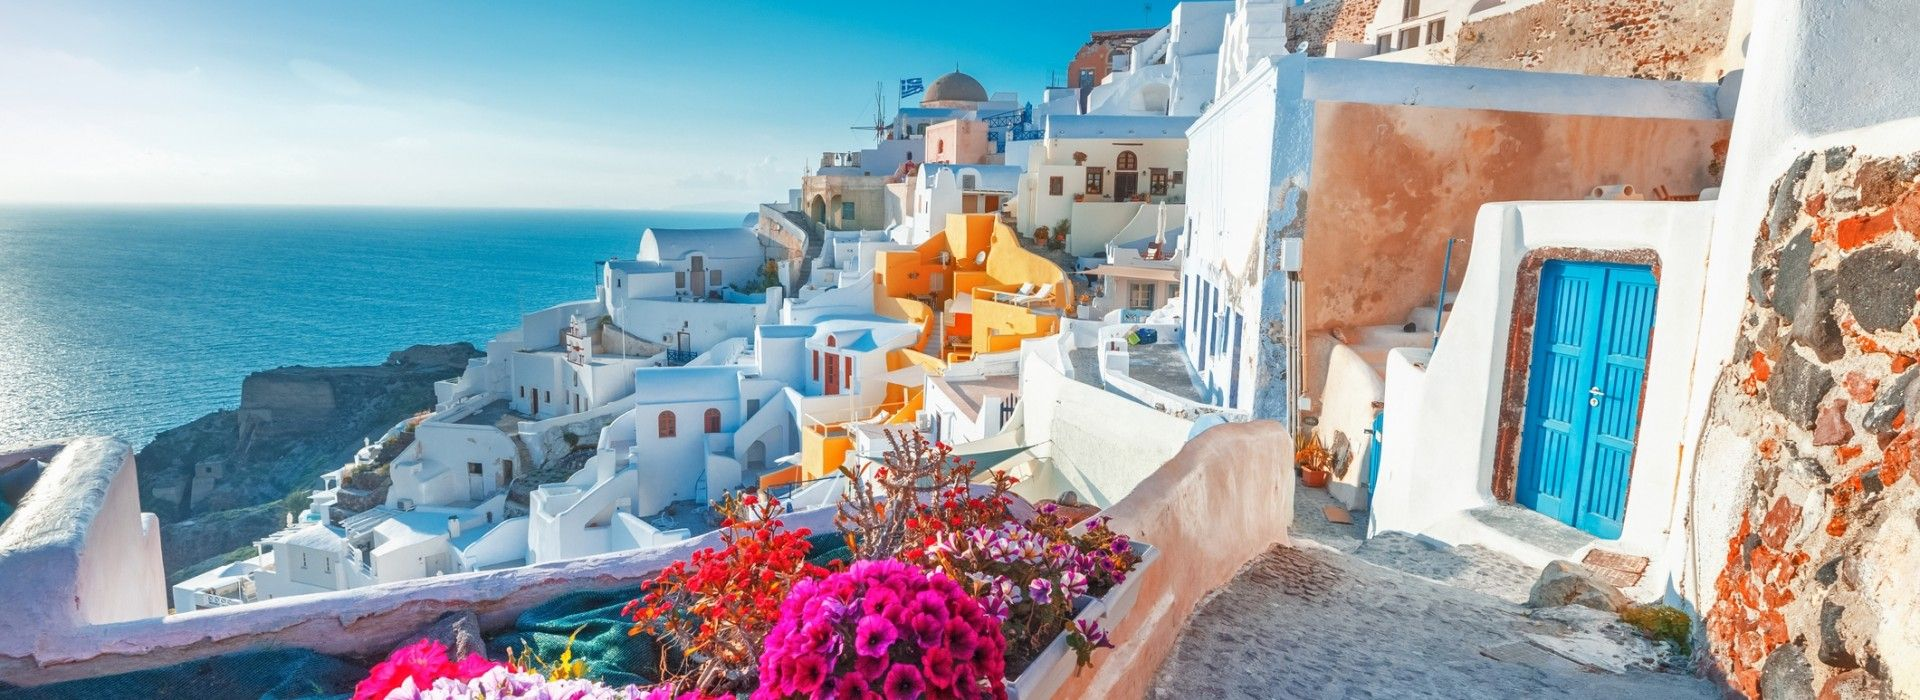 Active and outdoor Tours in Mediterranean